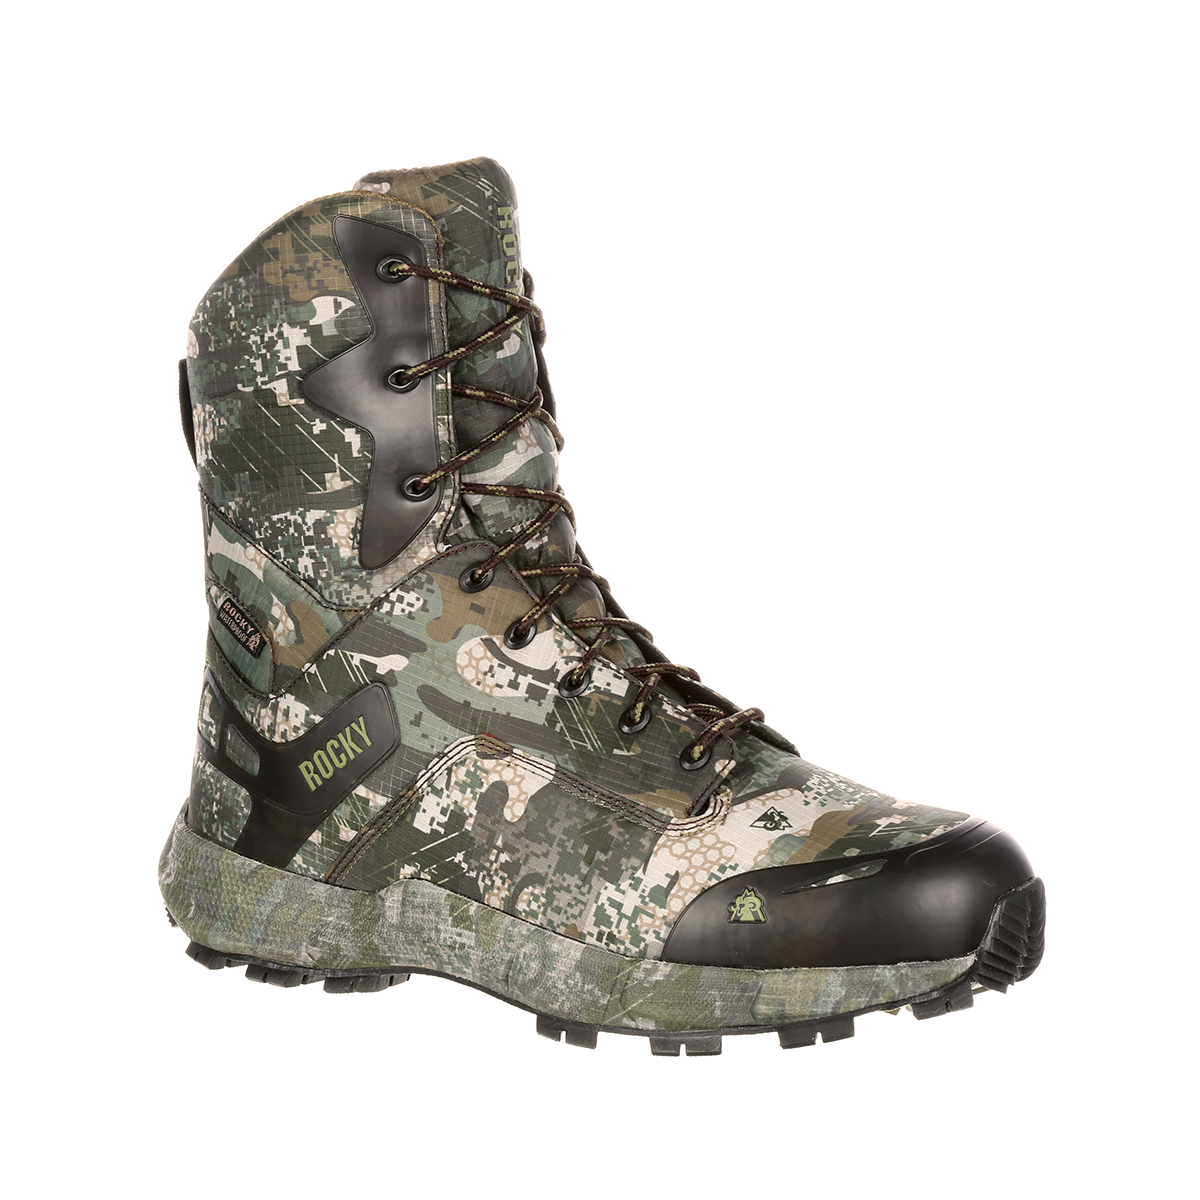 Rocky Men's 8'' Camo Hunting Outdoor Boots Camouflage Nylon Rubber 11.5 M by ROCKY BRANDS